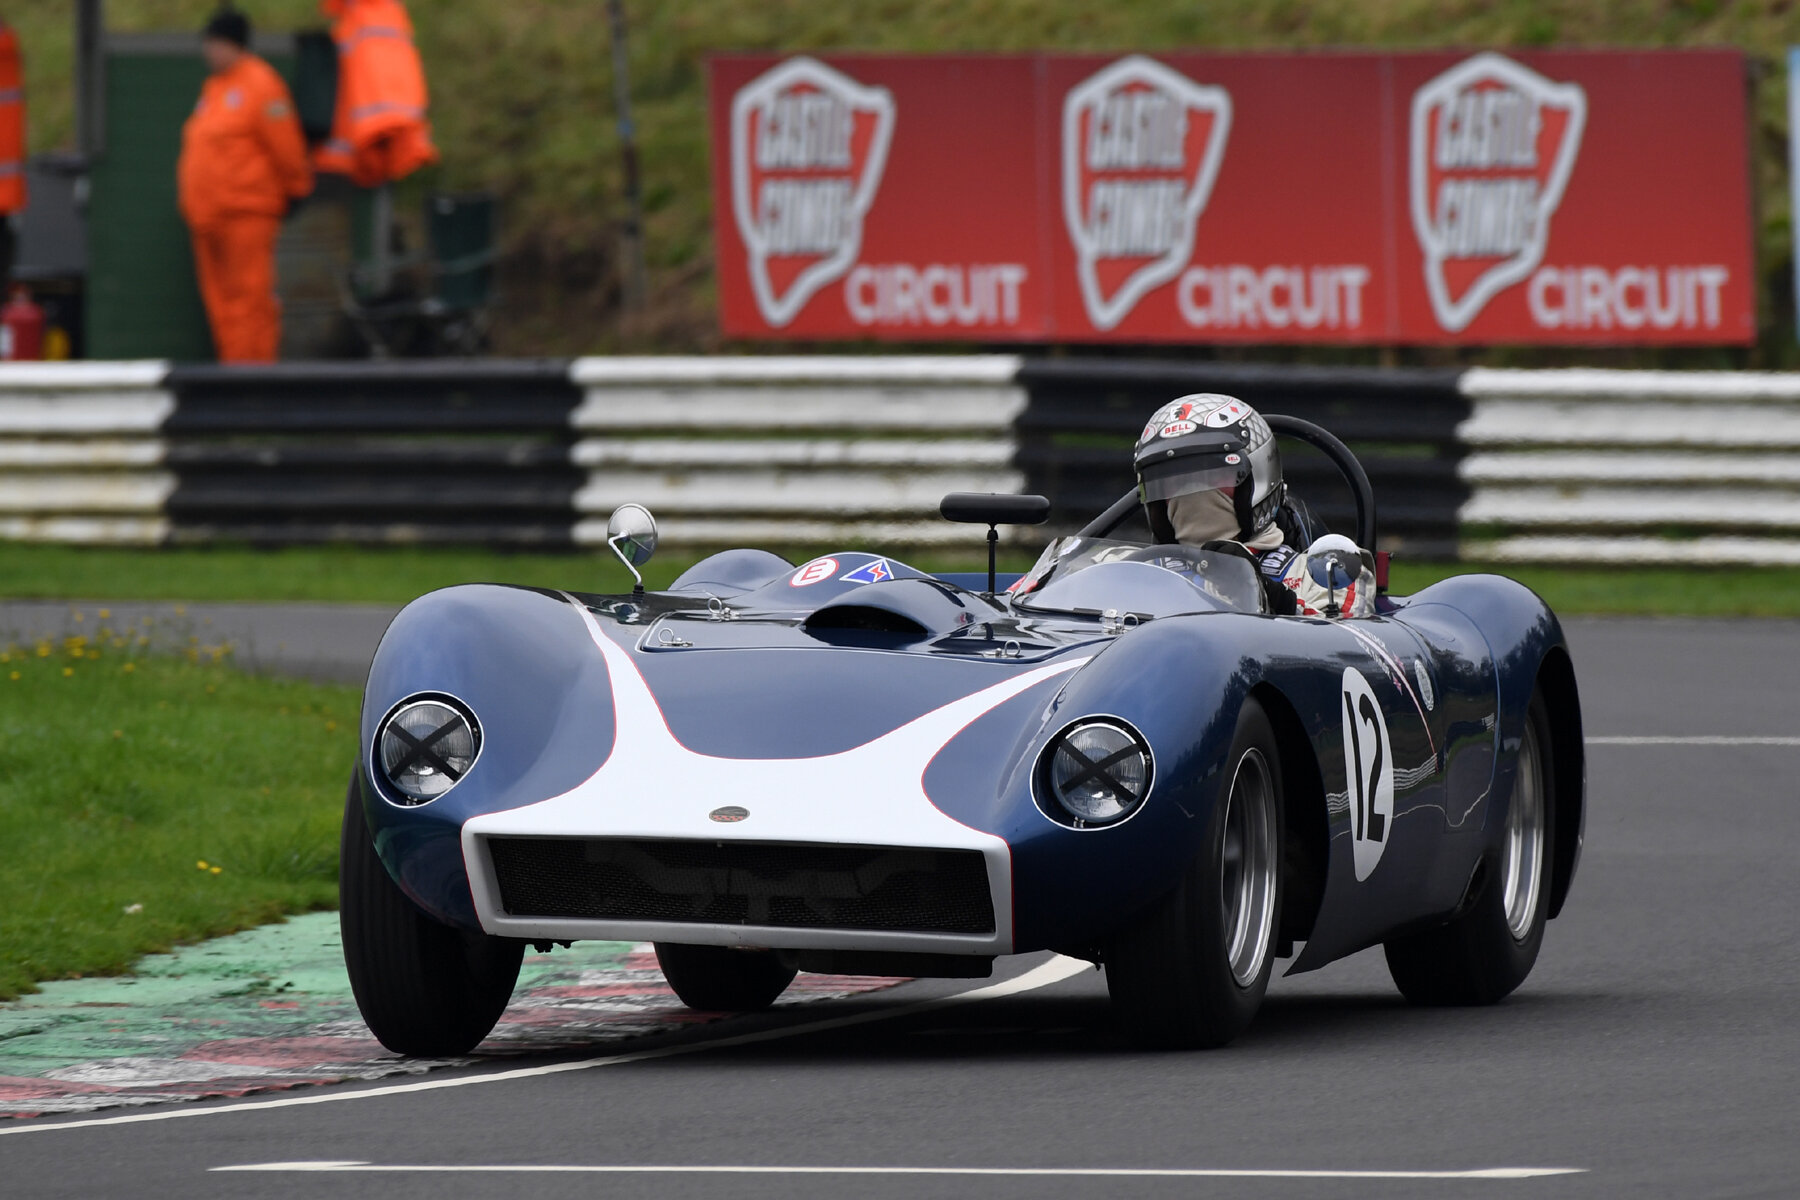 Nick Taylor in Richard Tyzack's Kellison, which failed to start, having caught fire on the grid  Photo - Jeff Bloxham